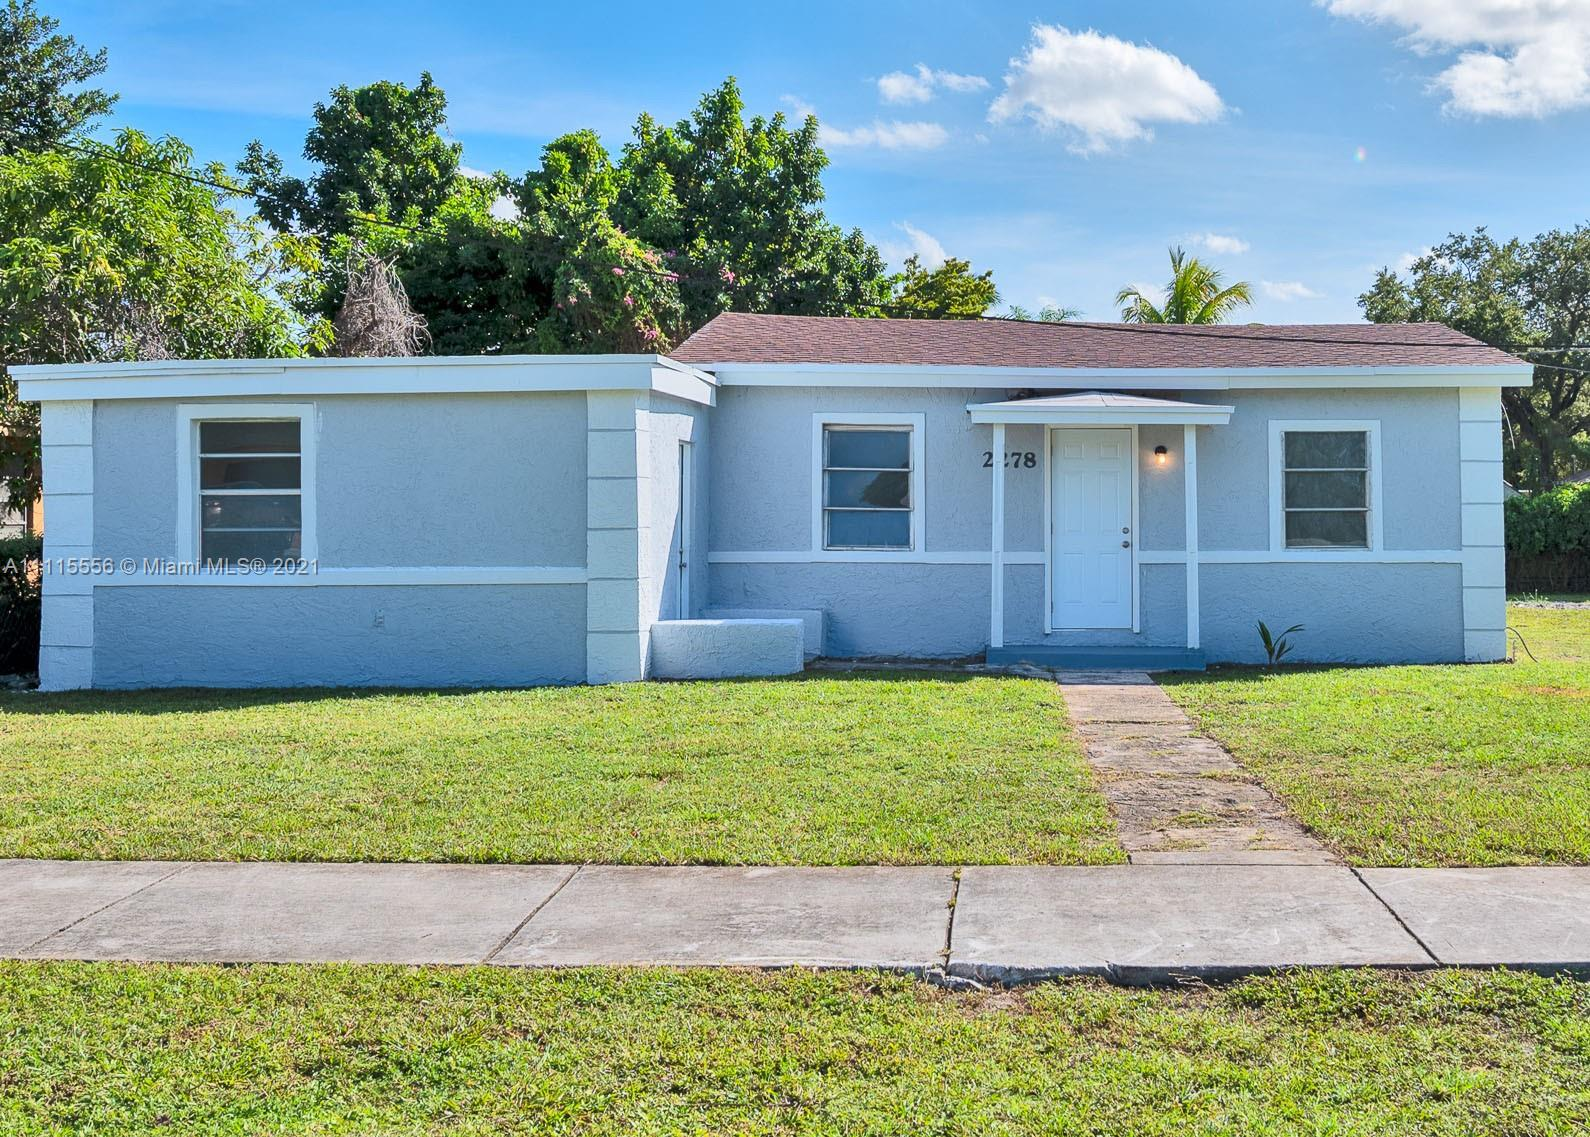 Single Family Home,For Sale,2278 NW 98th St, Miami, Florida 33147,Brickell,realty,broker,condos near me